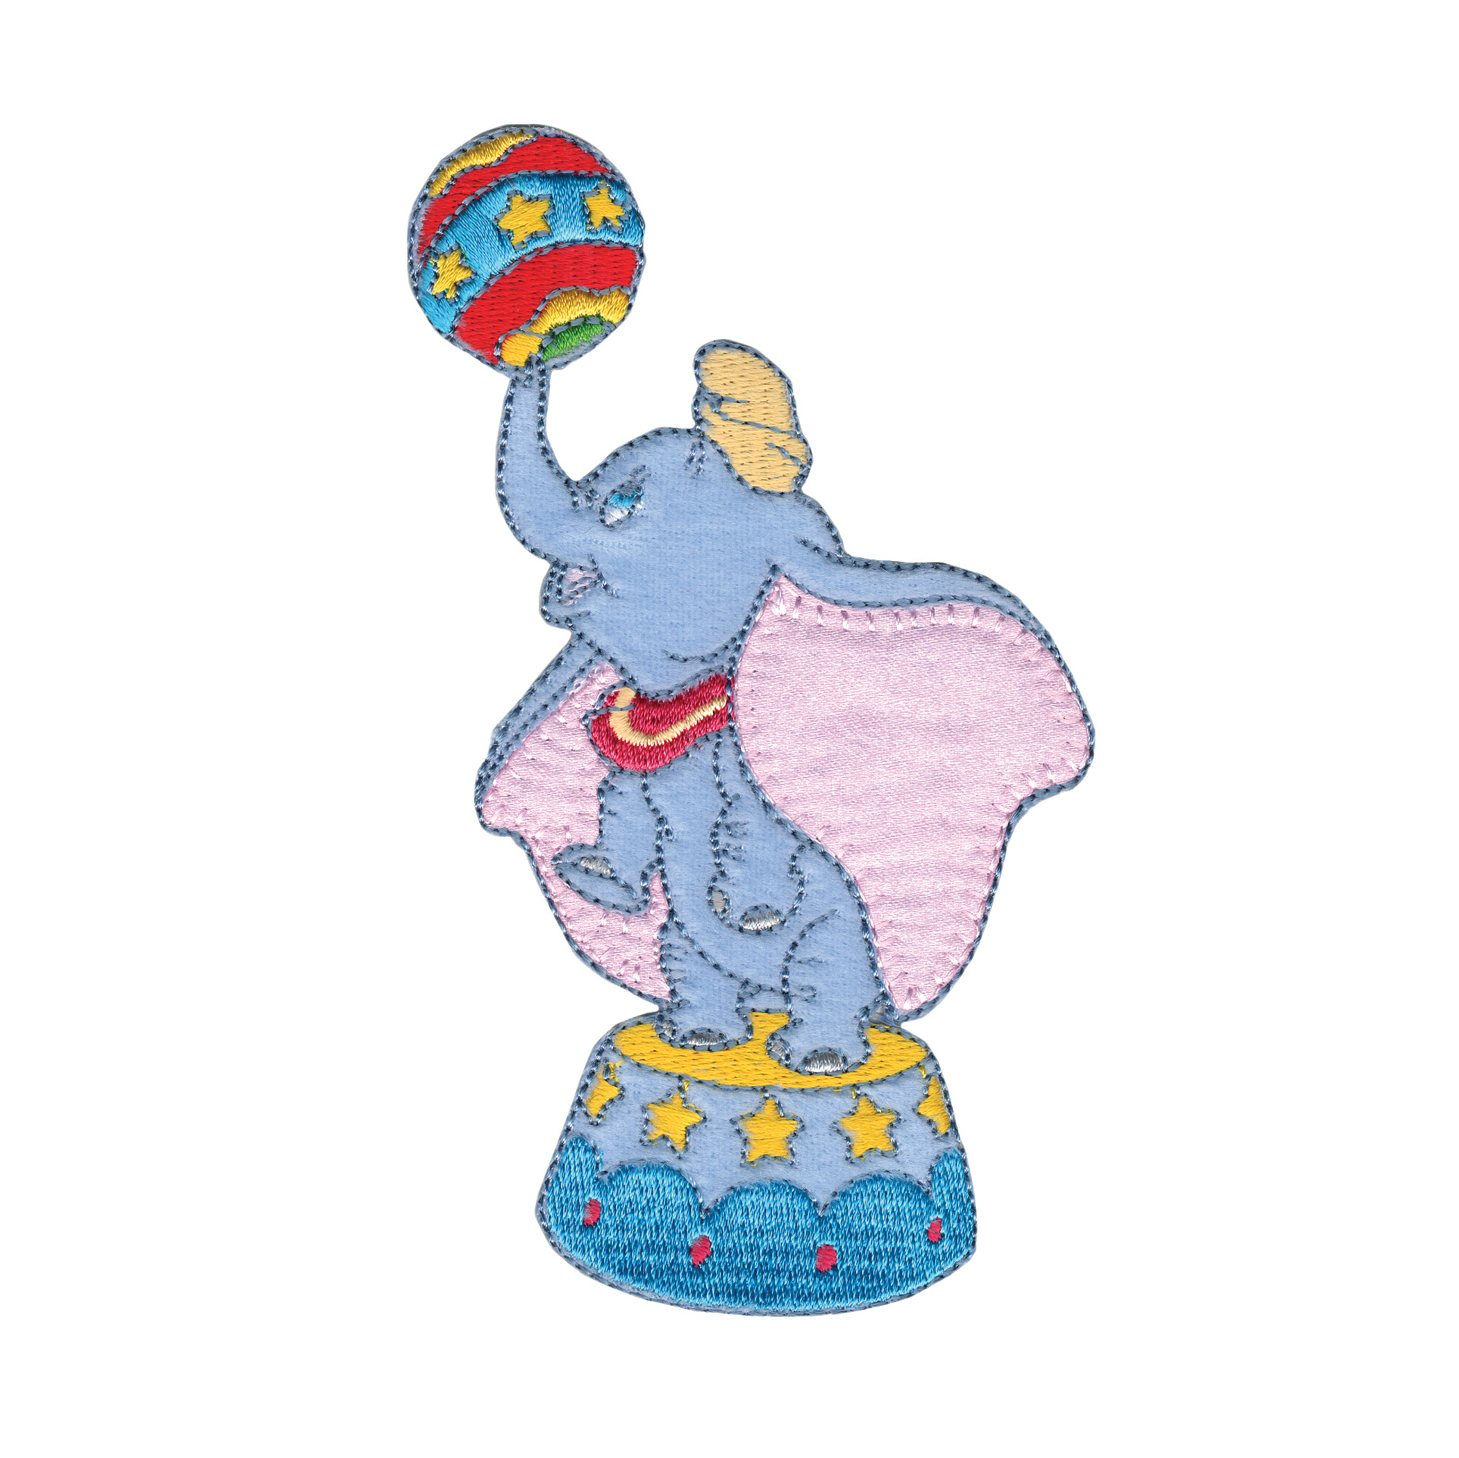 Disney Dumbo With Ball Iron On Applique by Notions Marketing in USA